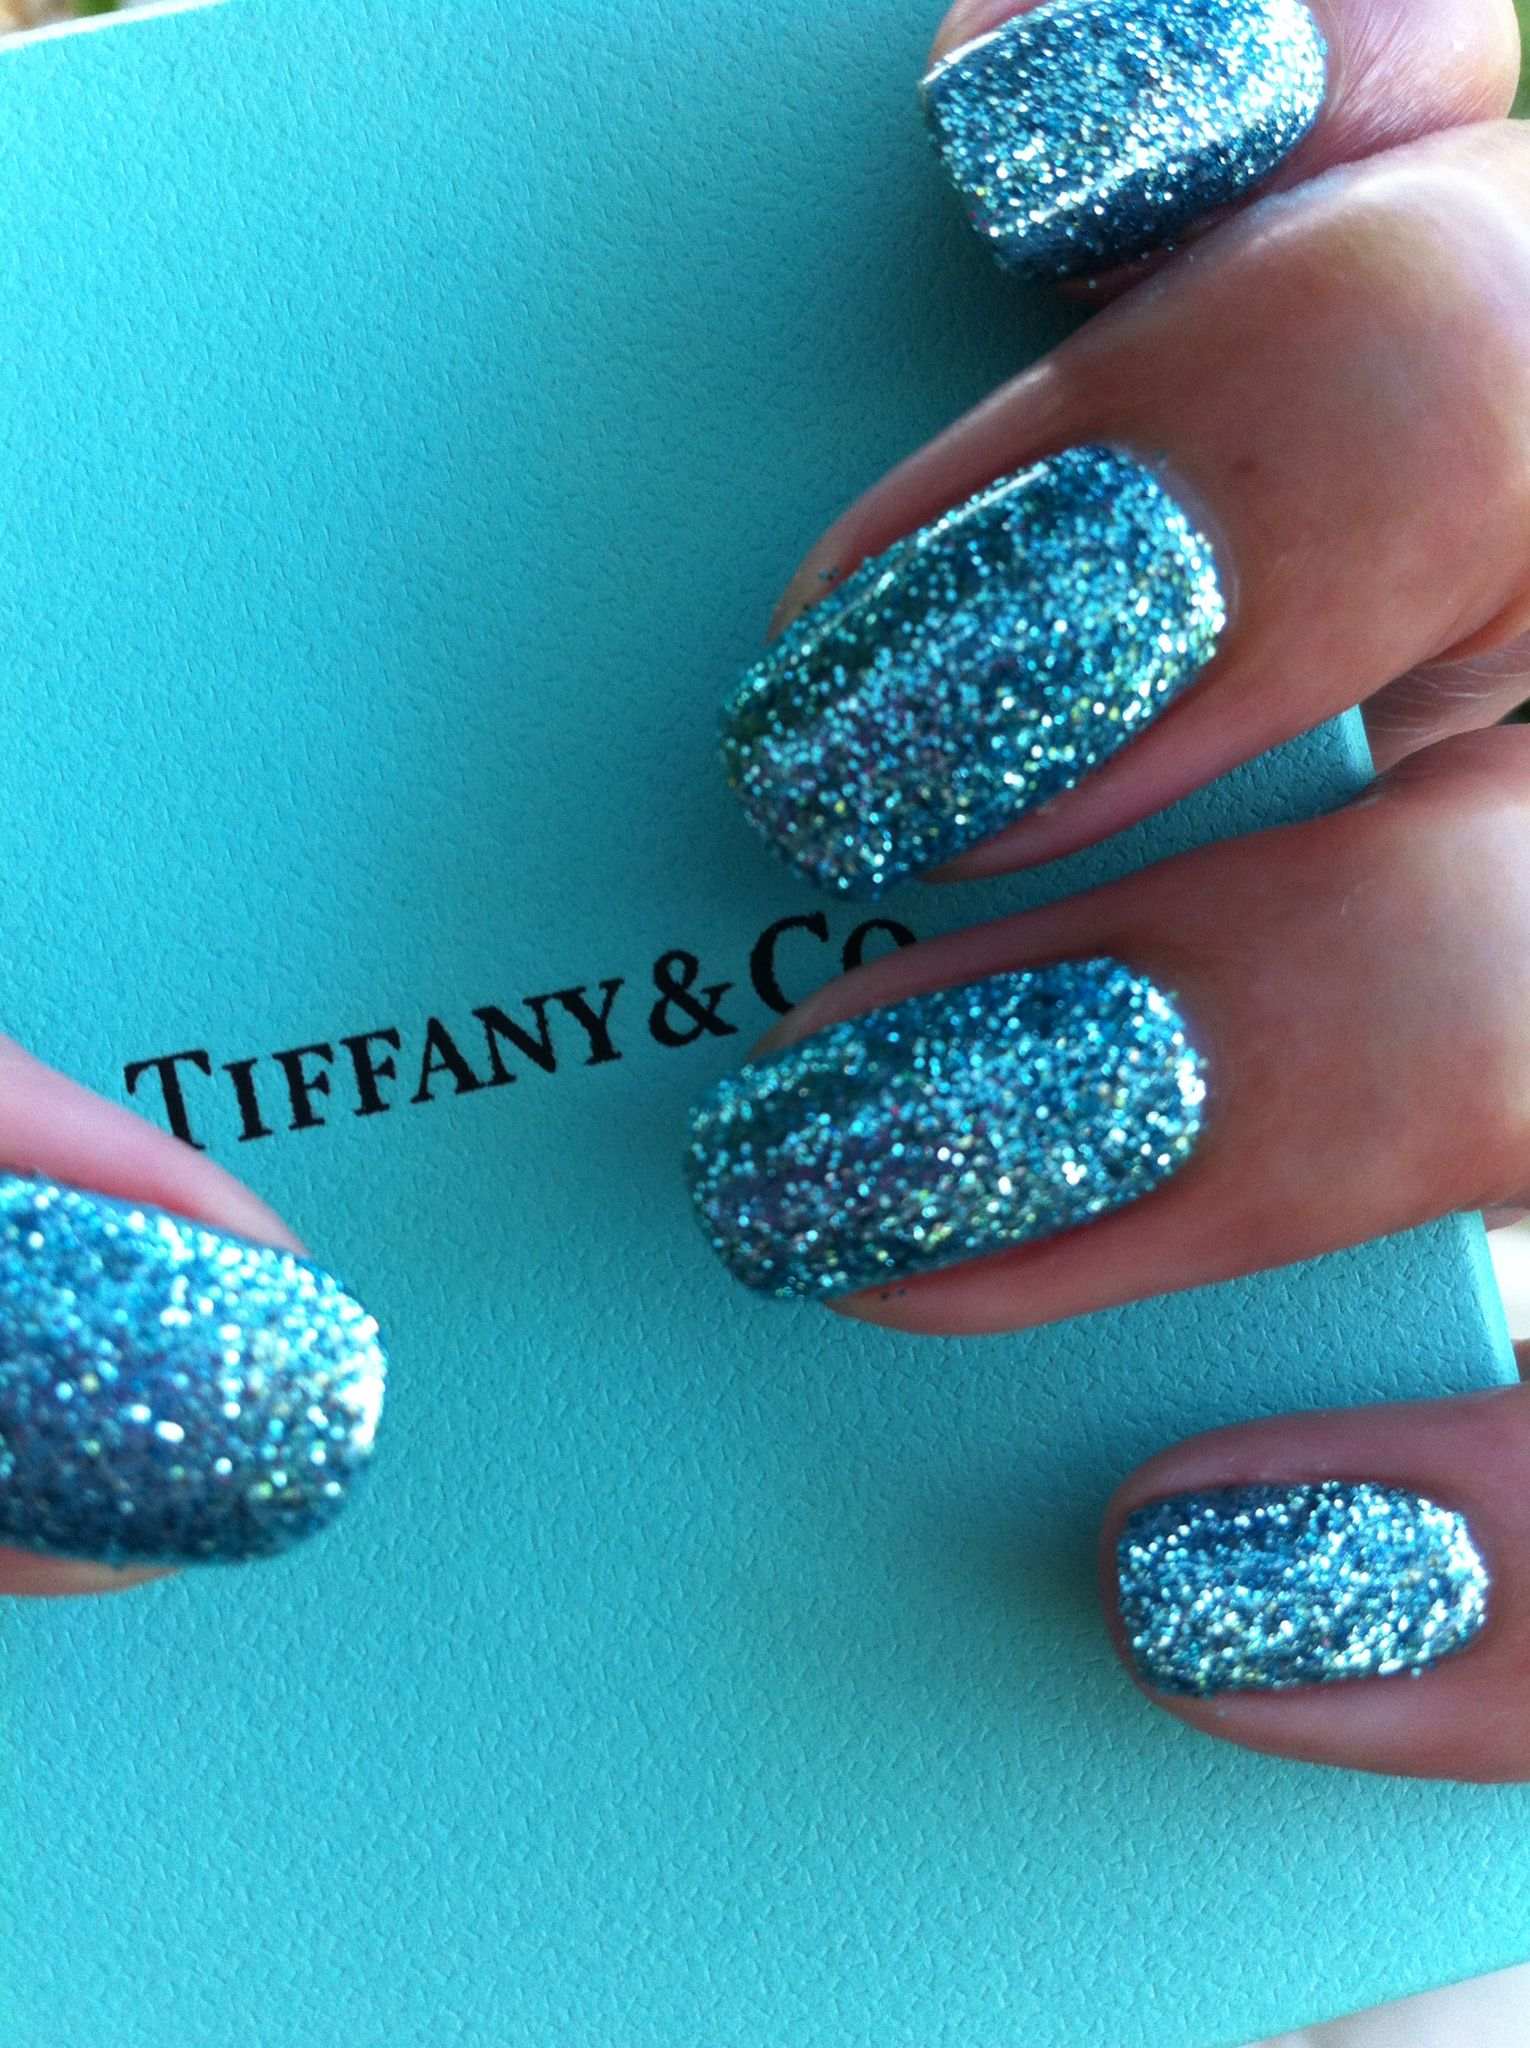 Tiffany co tiffany inspired gel nails in cnd shellac and tiffany co tiffany inspired gel nails in cnd shellac and lecente glitter intense prinsesfo Images